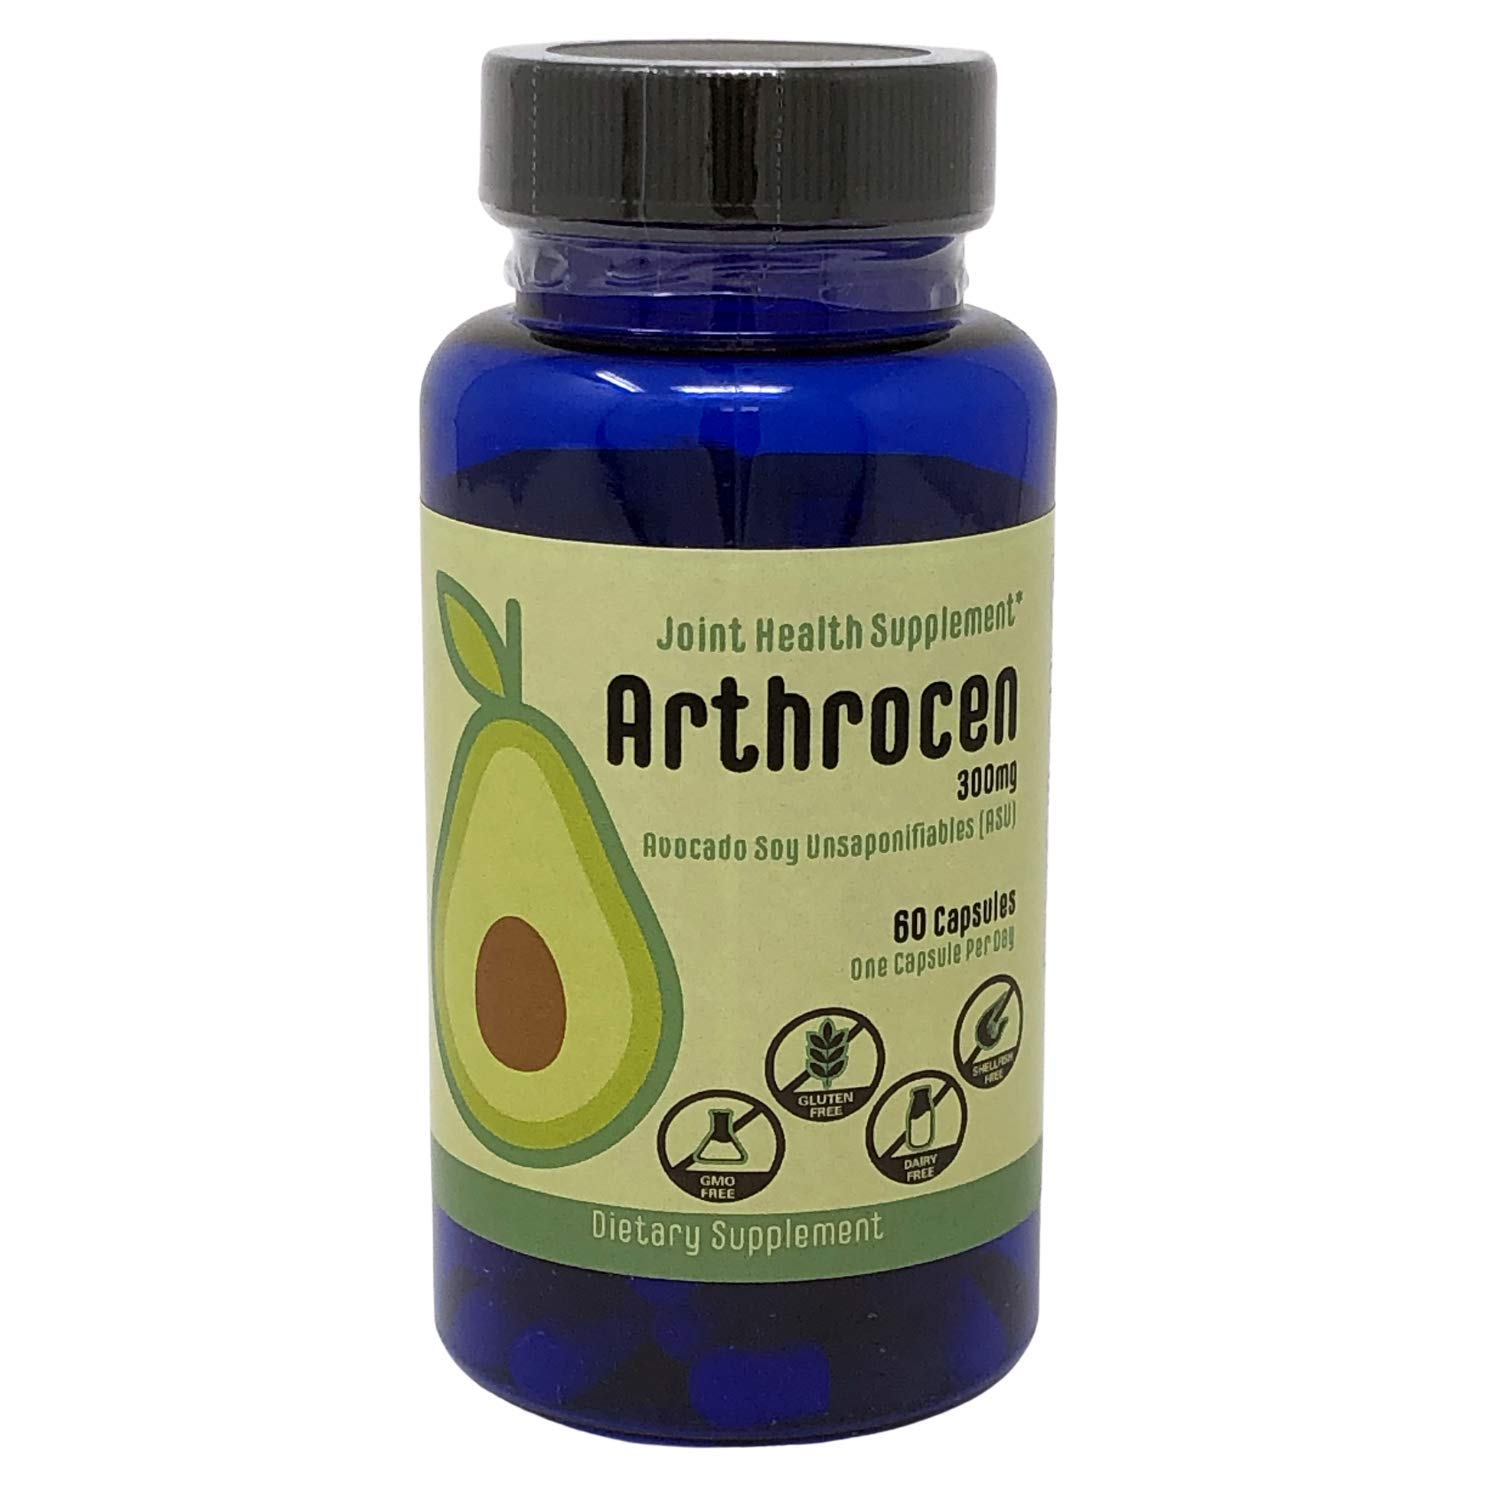 Arthrocen 300, Non-GMO, Joint Health Supplement, Avocado soy Unsaponifiable, 300Mg, Dairy, Gluten & Shellfish Free, 60 Day Supply, One Capsule Per Day